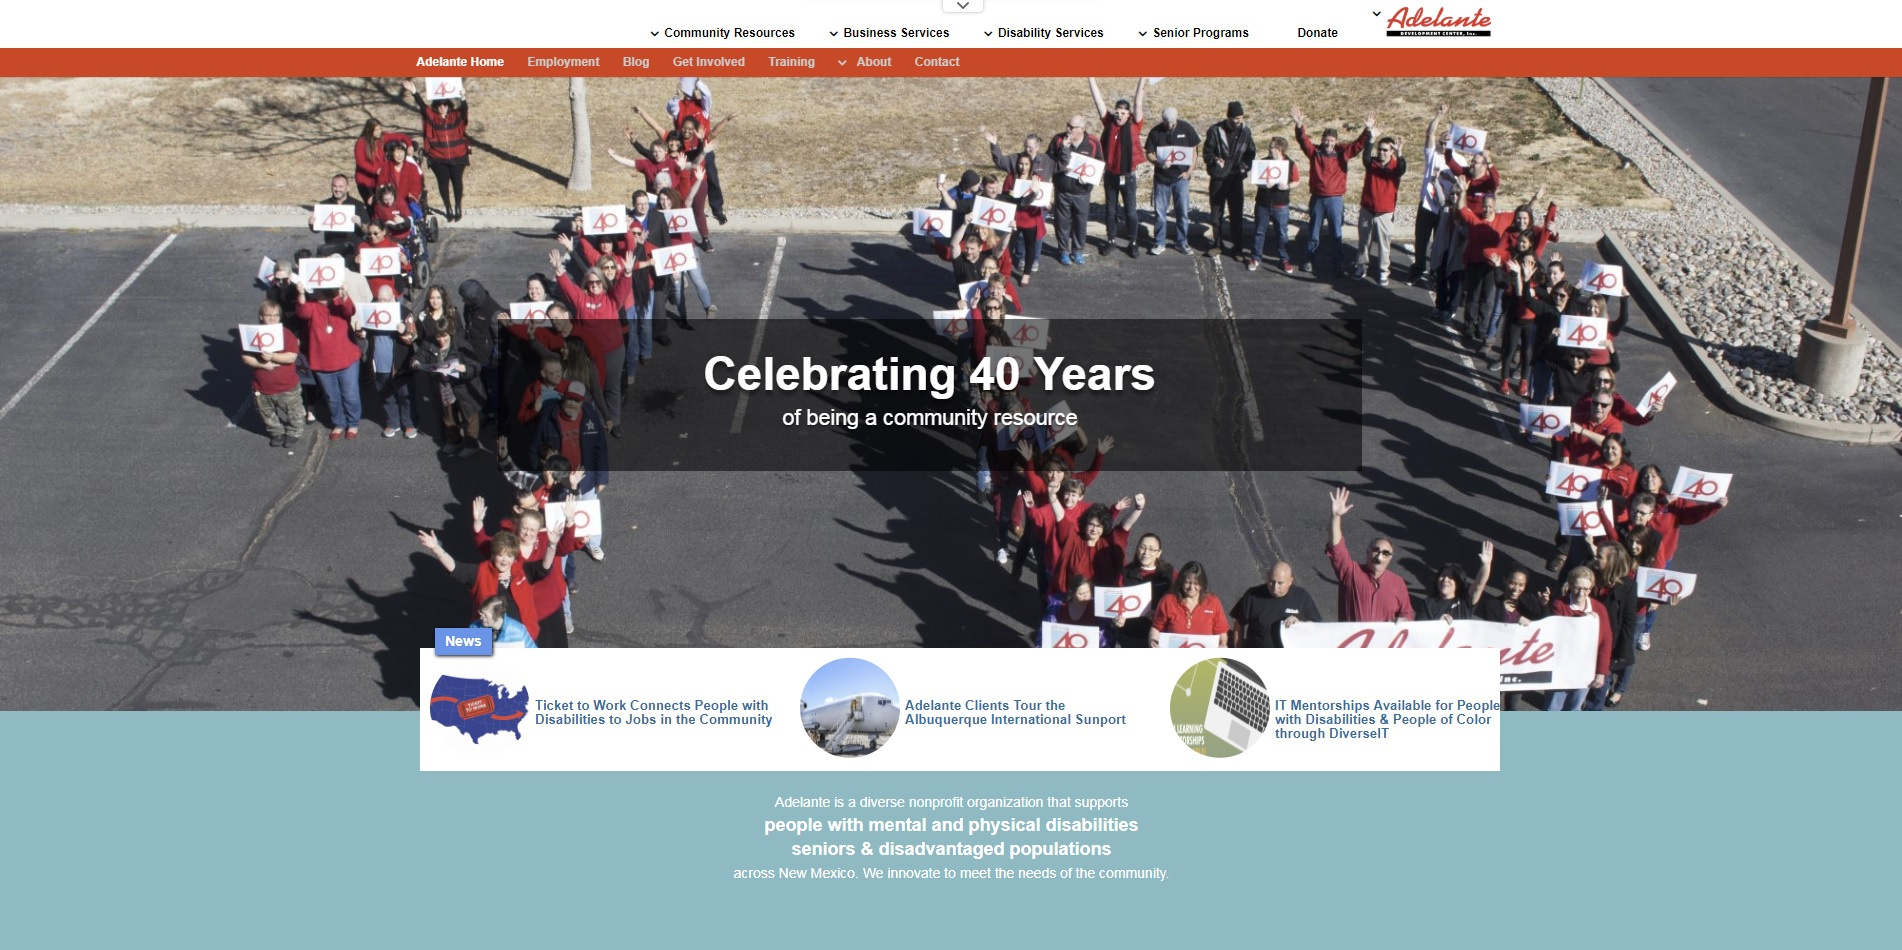 Screenshot shown of Adelante's homepage with 40th anniversary photo highlighted